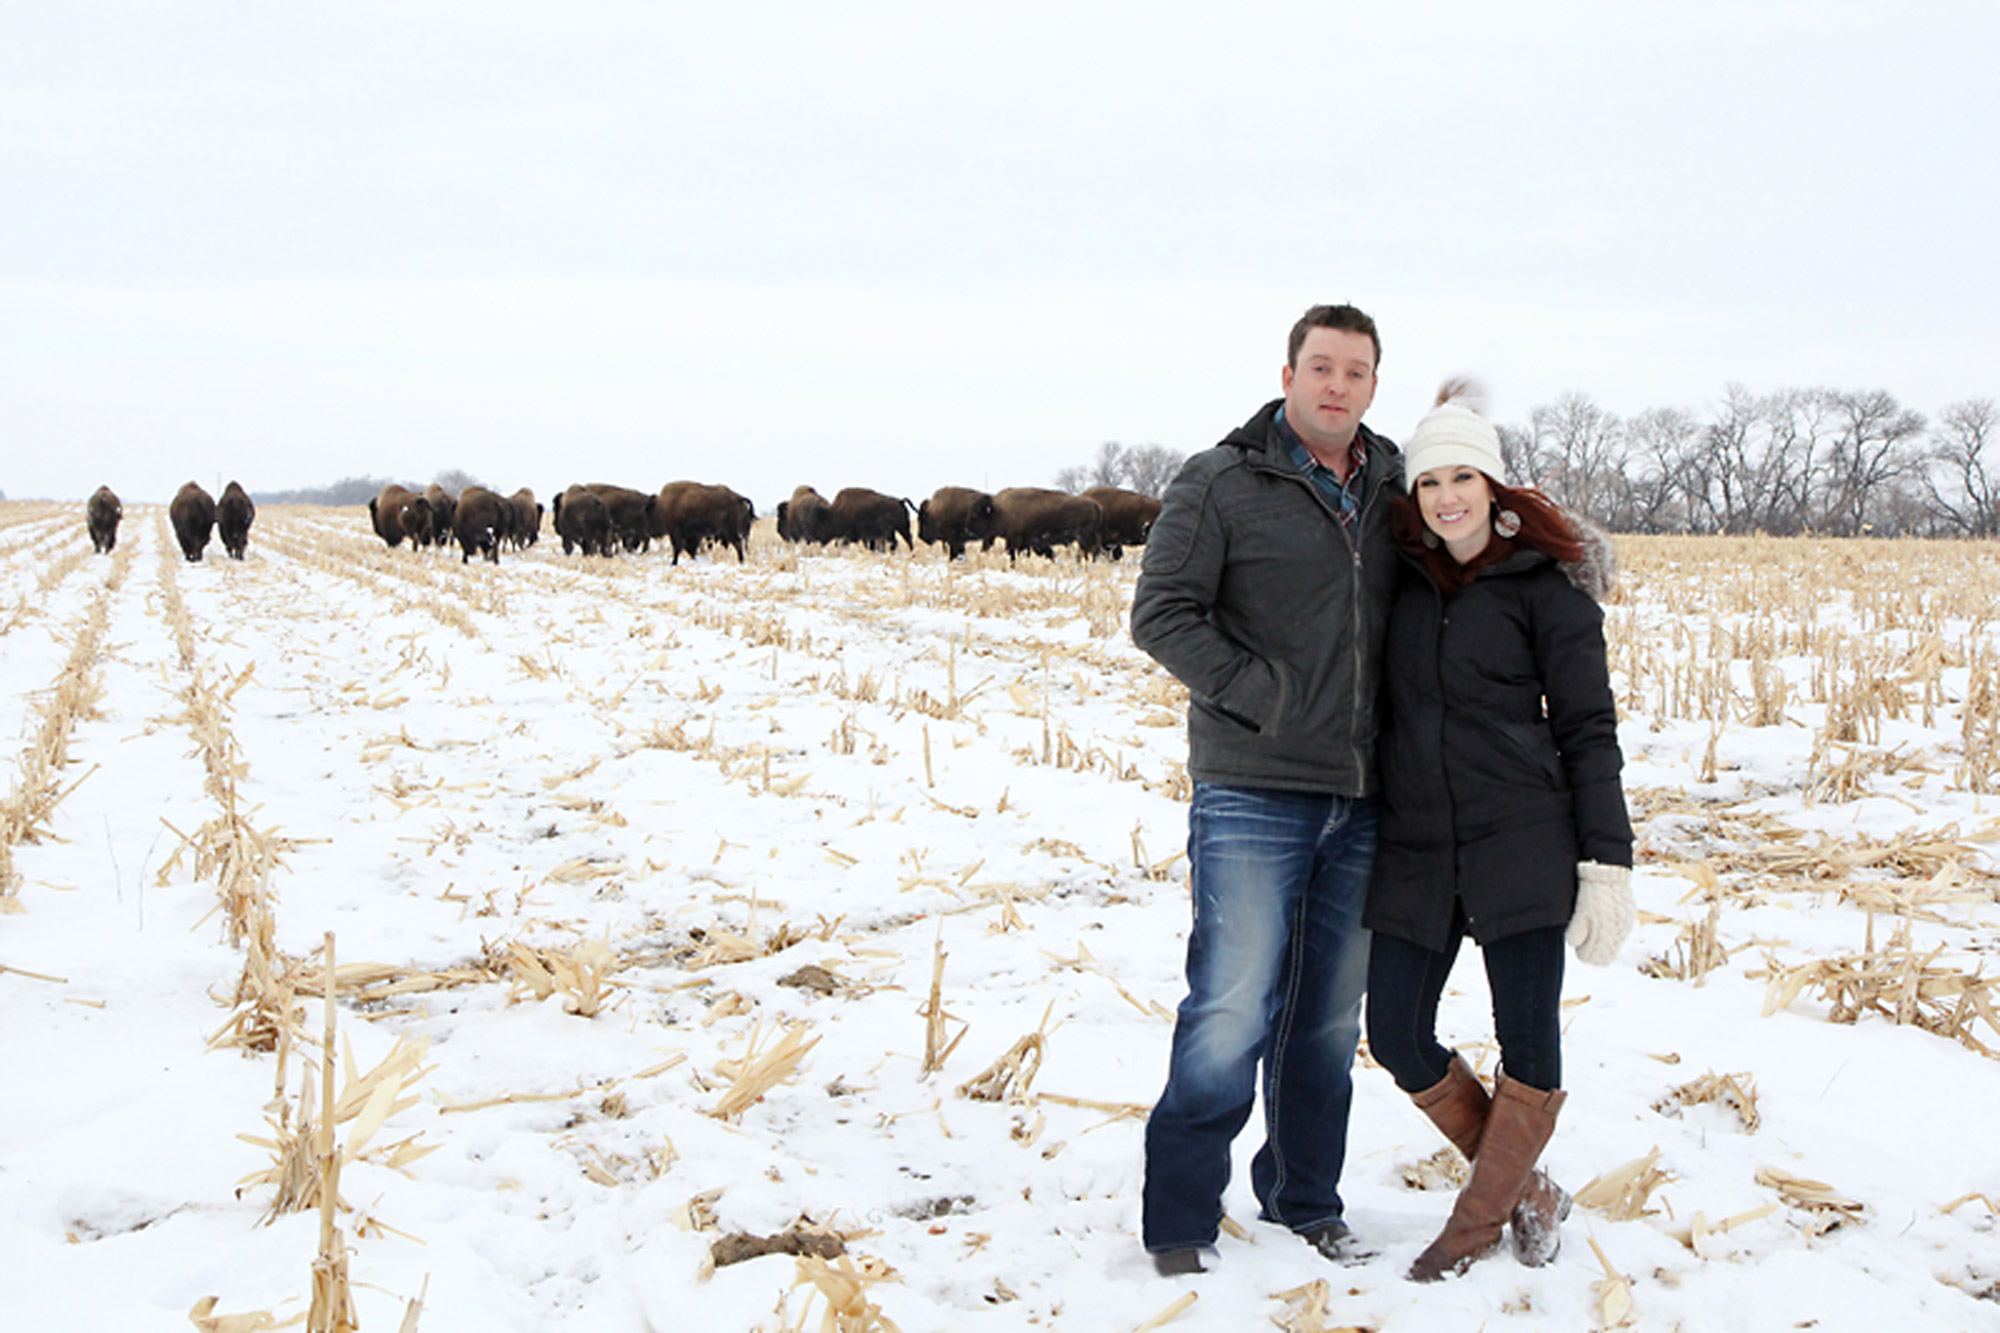 Brooks and Jen White of Borderland Agriculture, based in Pierson and Lyleton, were named Manitoba's Outstanding Young Farmers for 2018.